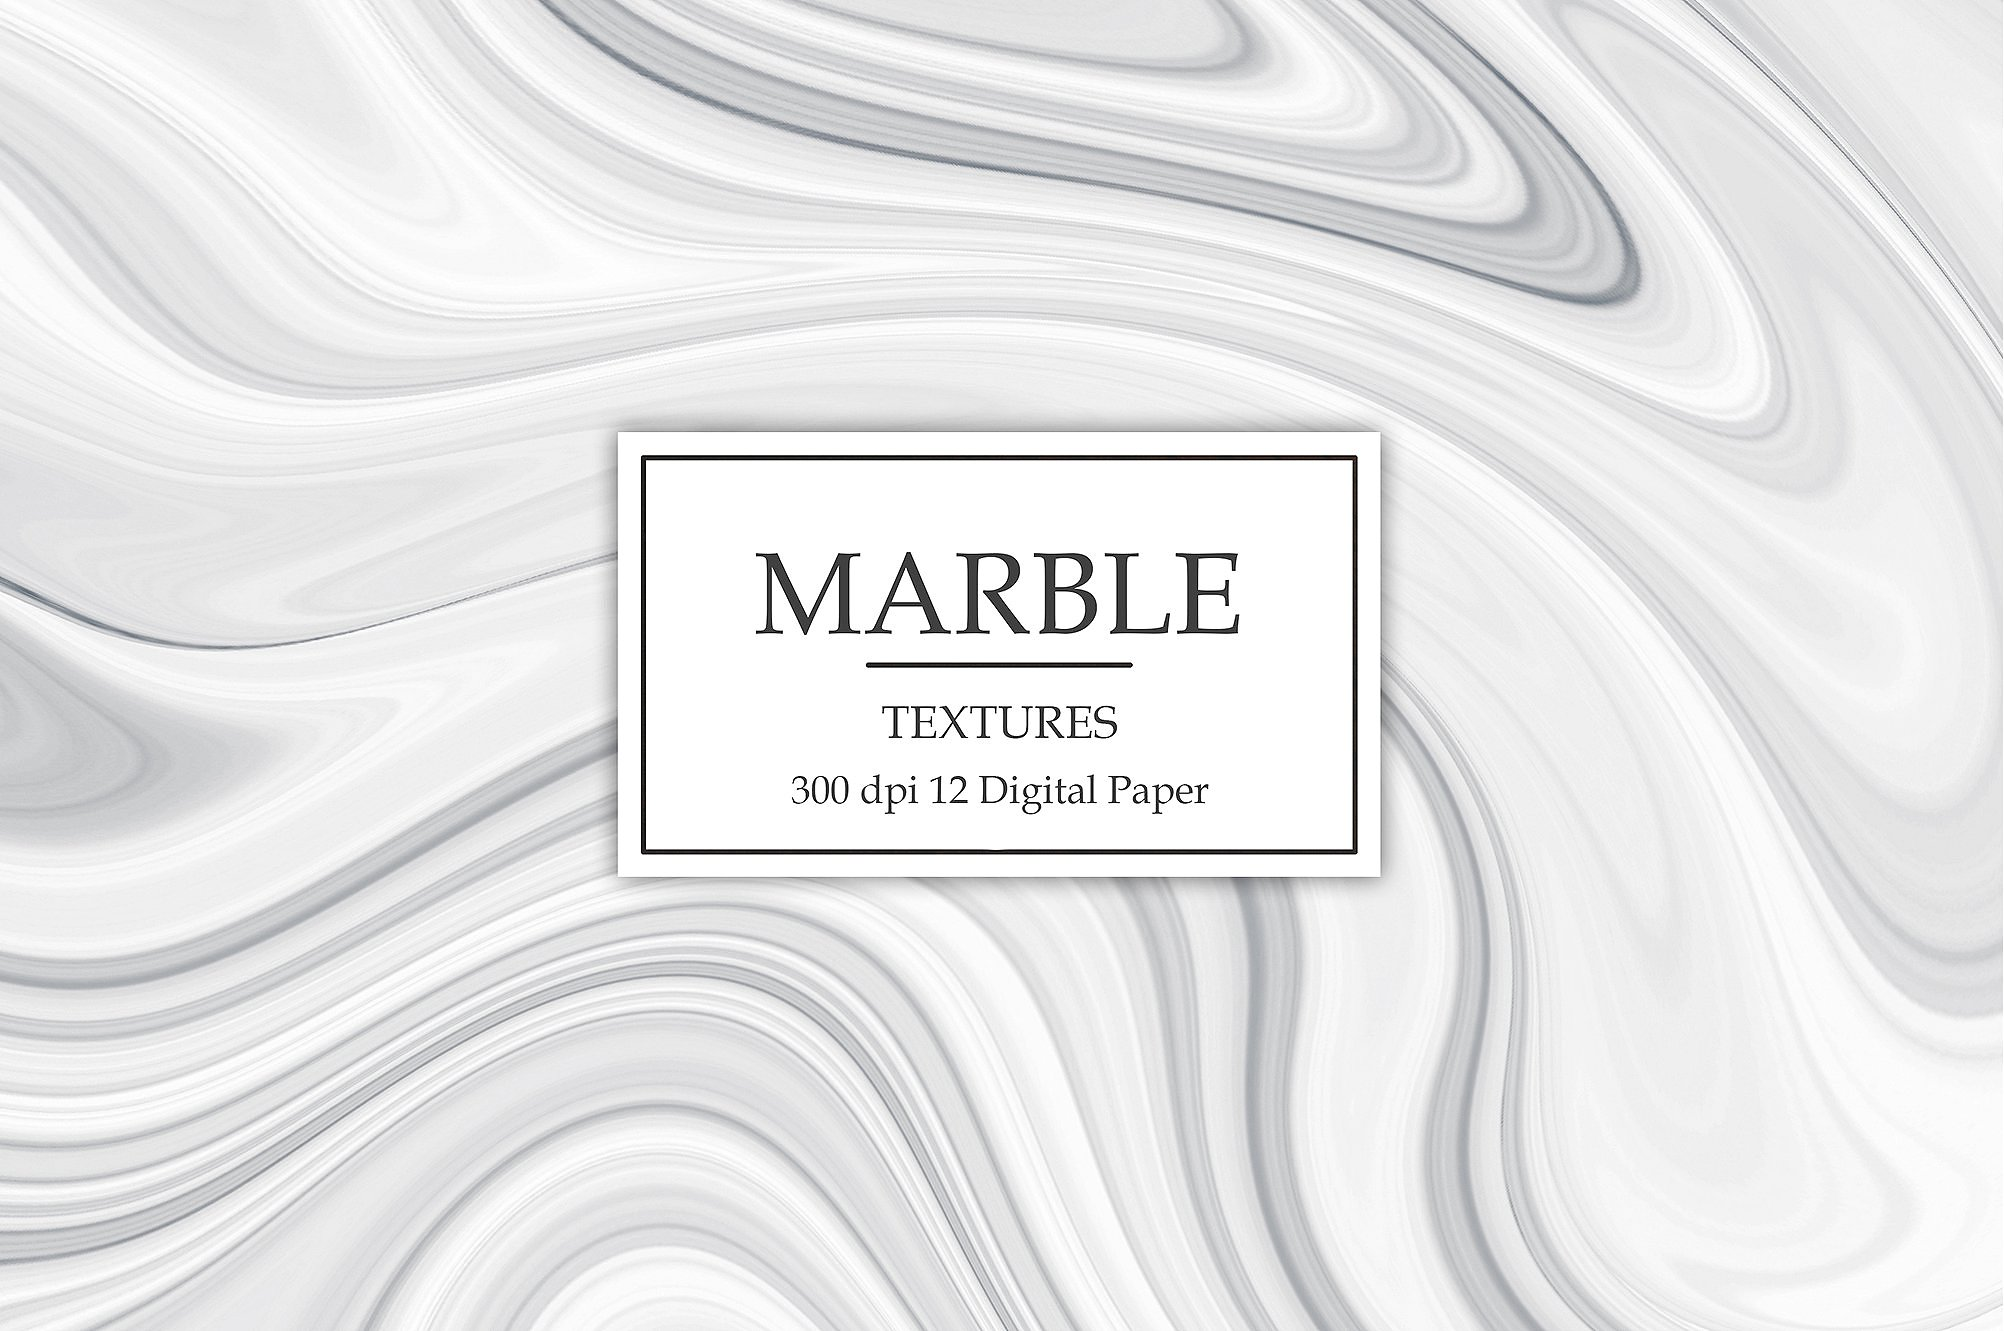 Marble Textures 12 Collections 144 Digital Paper example image 16